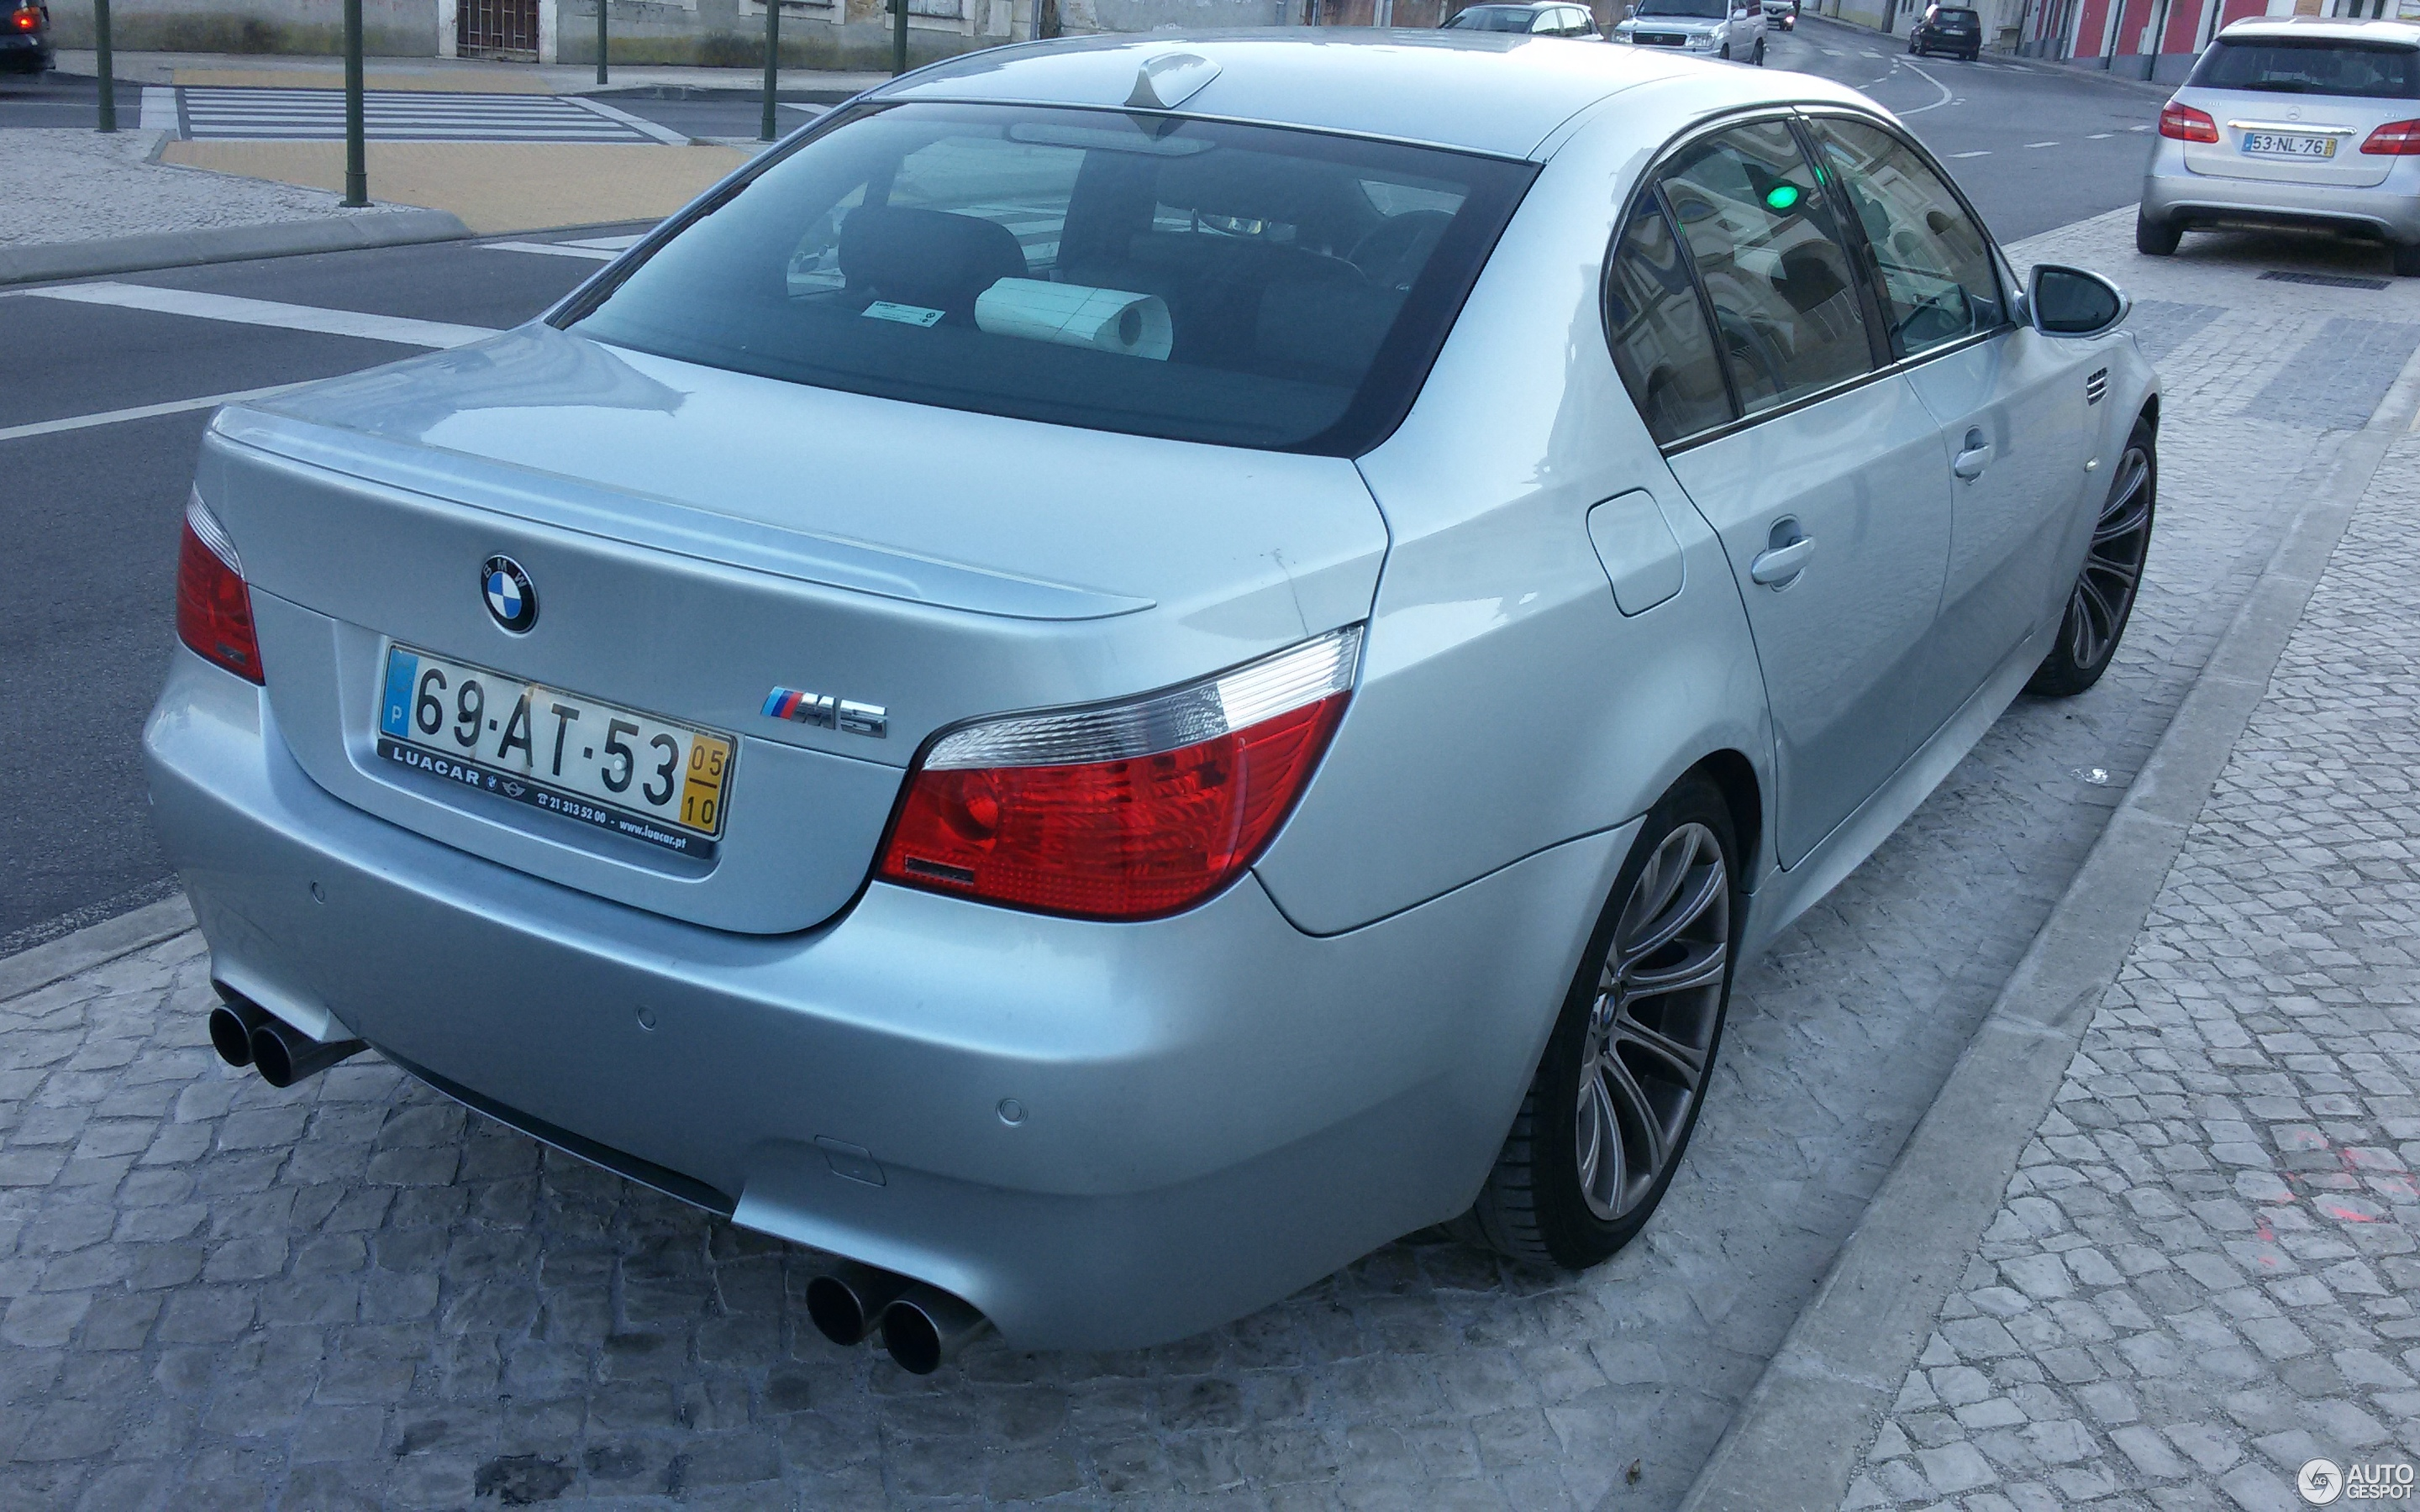 BMW M5 E60 2005 - 22 January 2017 - Autogespot